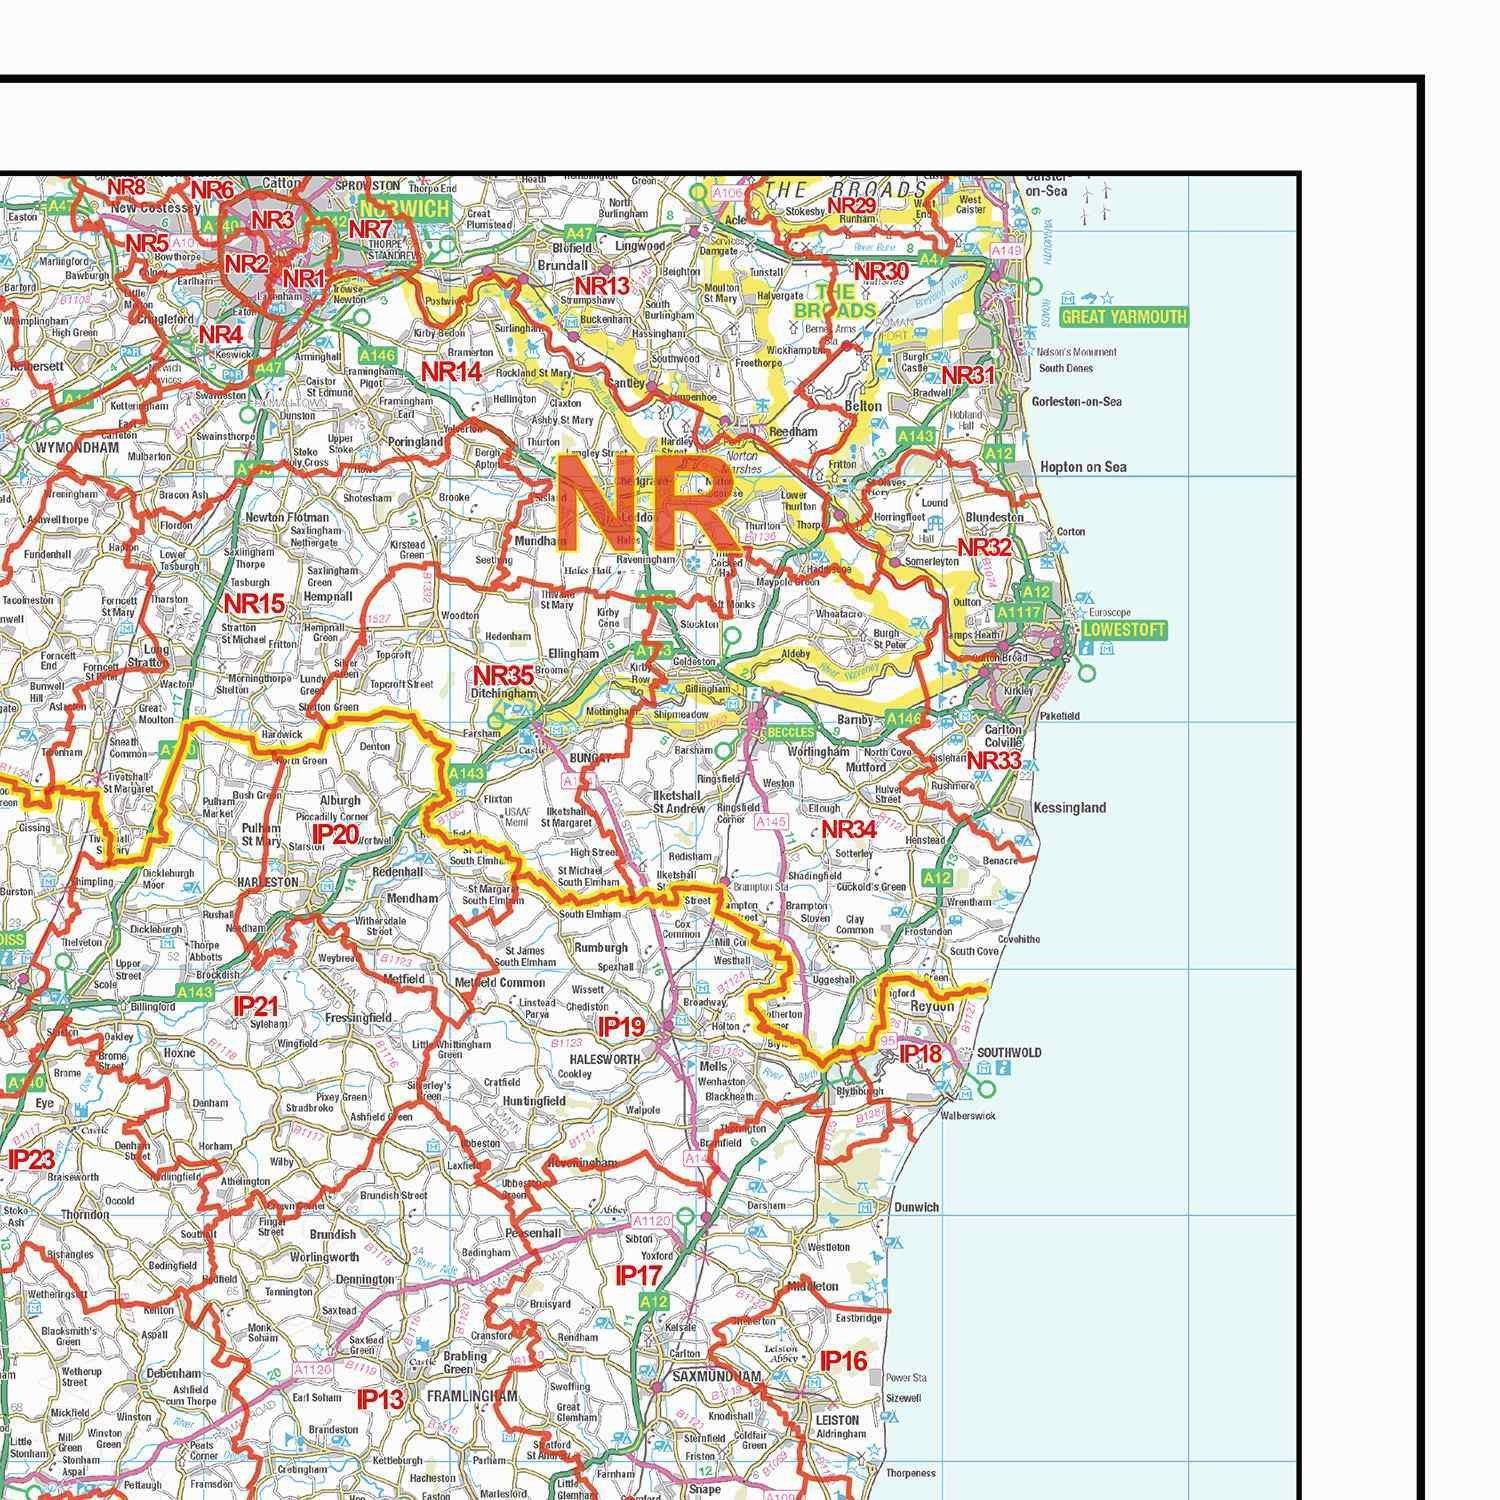 Map East Of England.South East England Postcode District Map D2